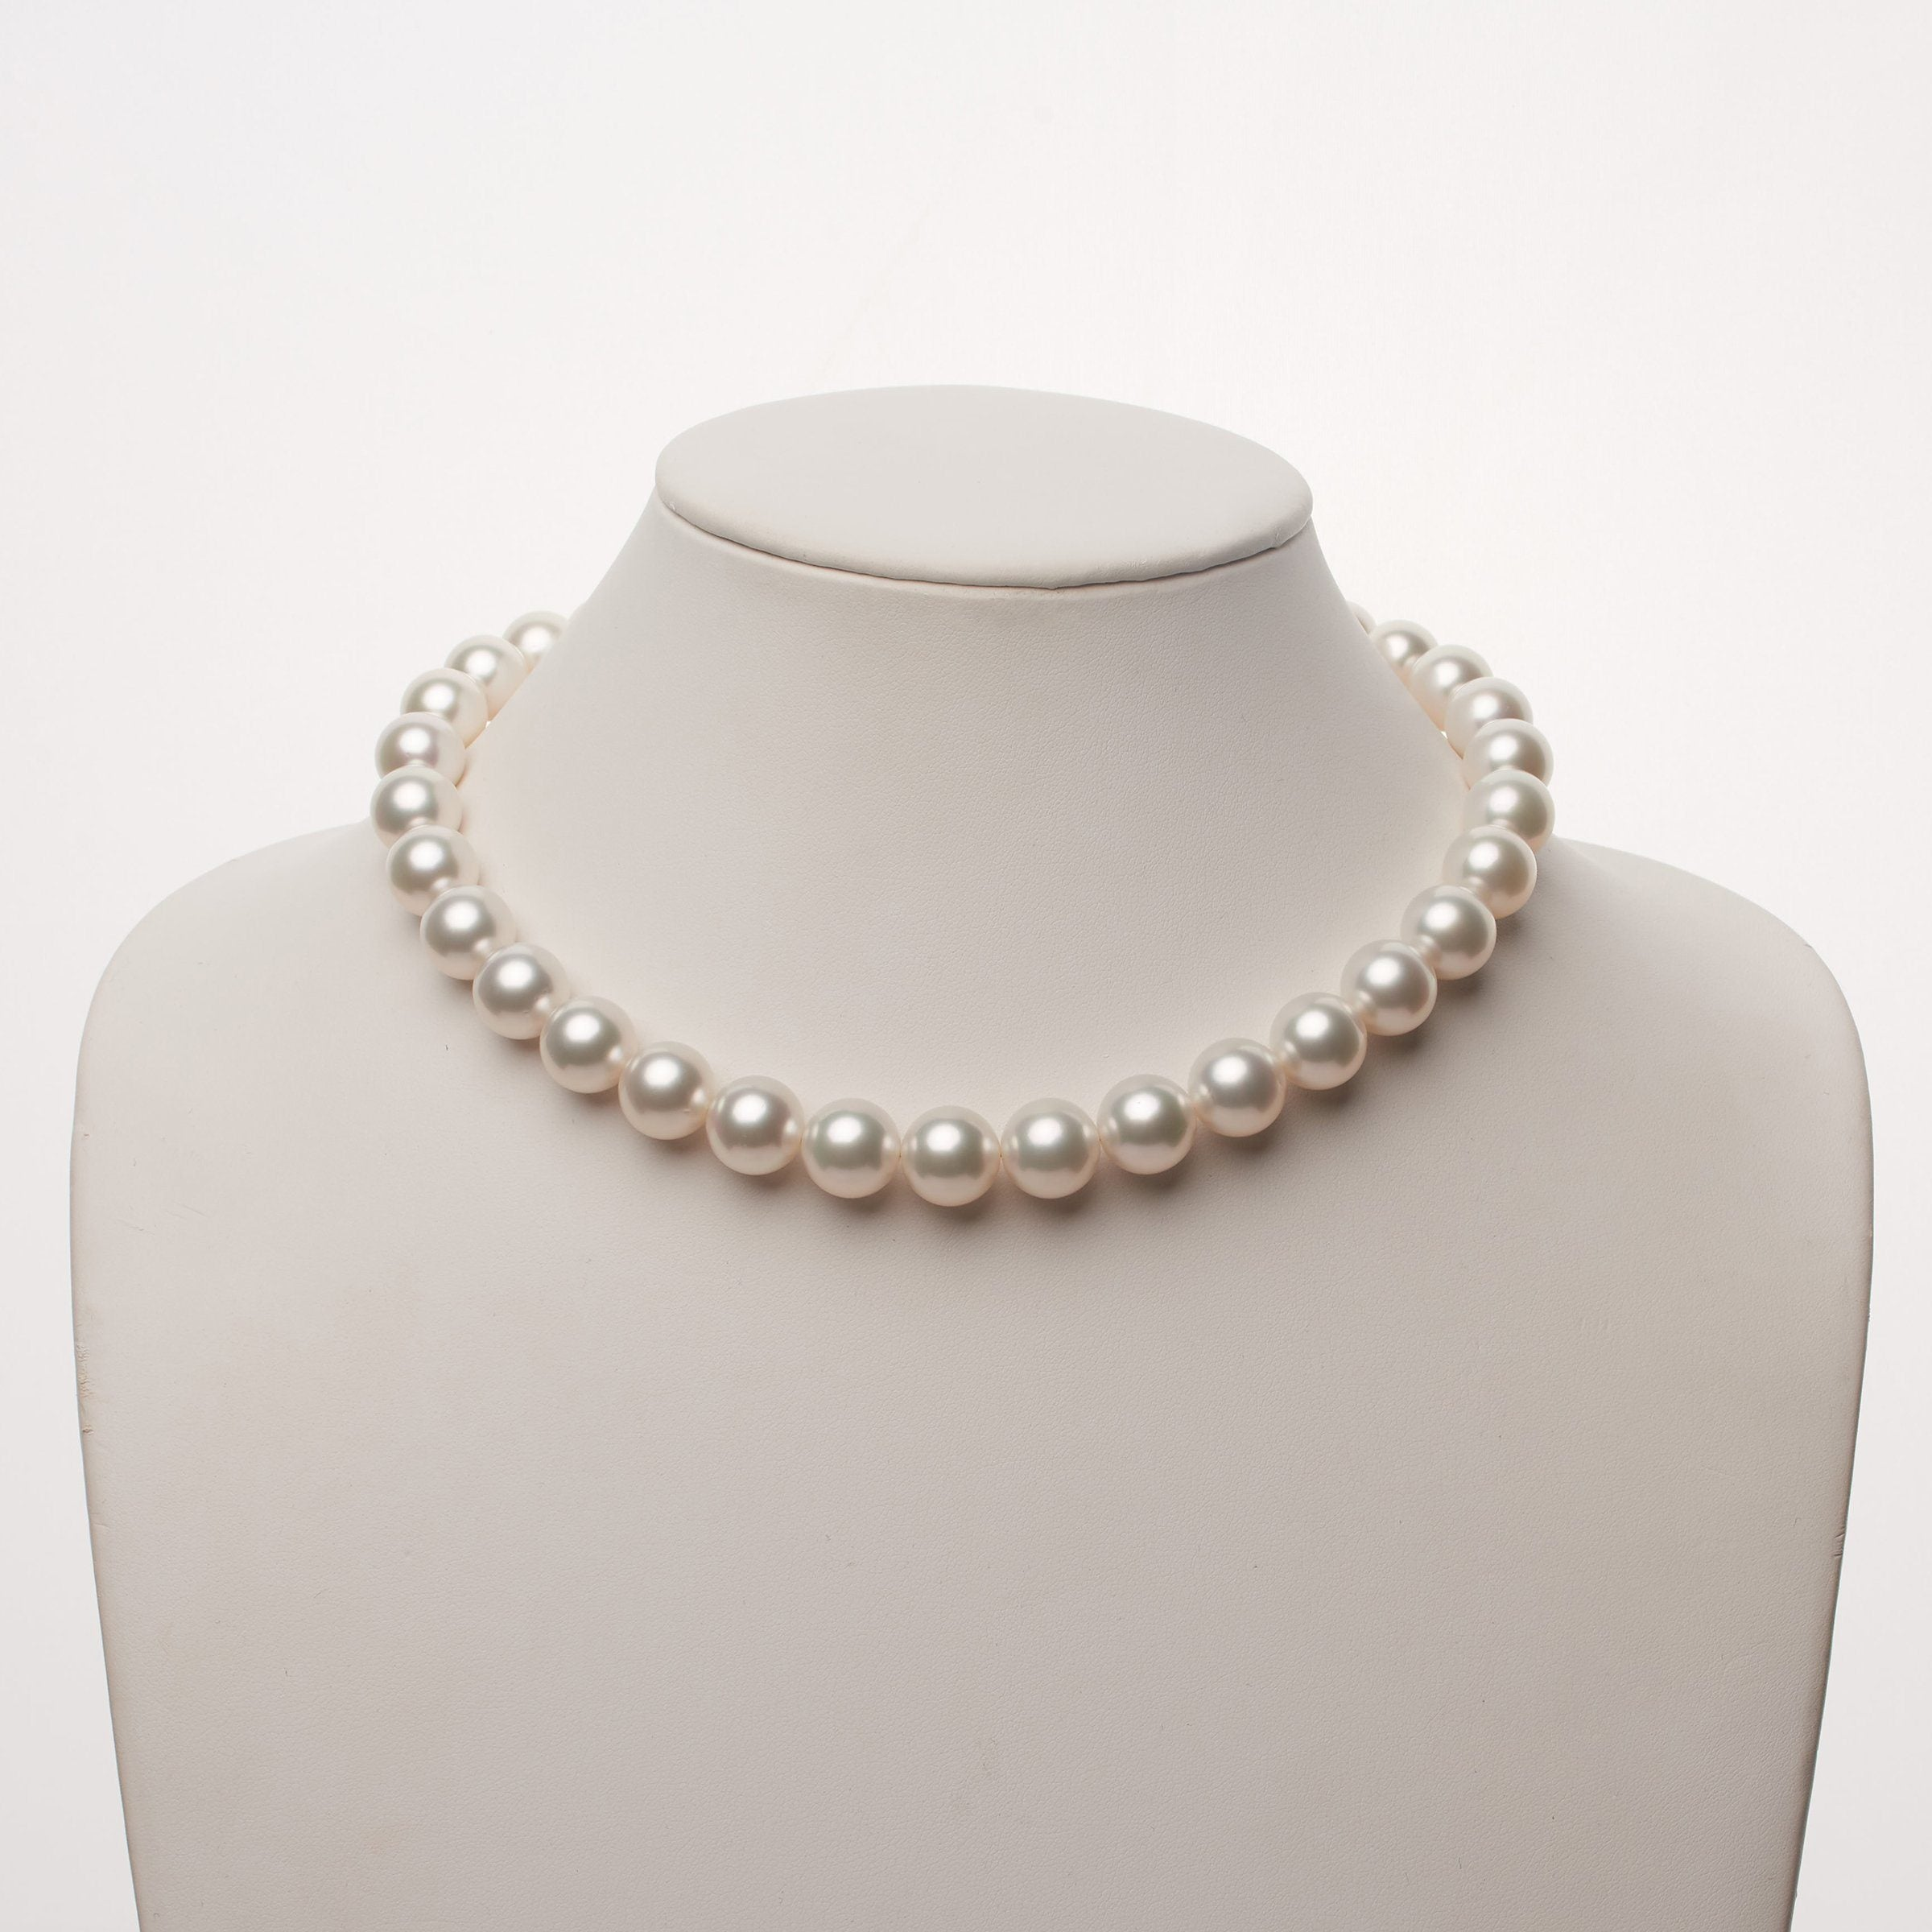 The Vivace White South Sea Pearl Necklace